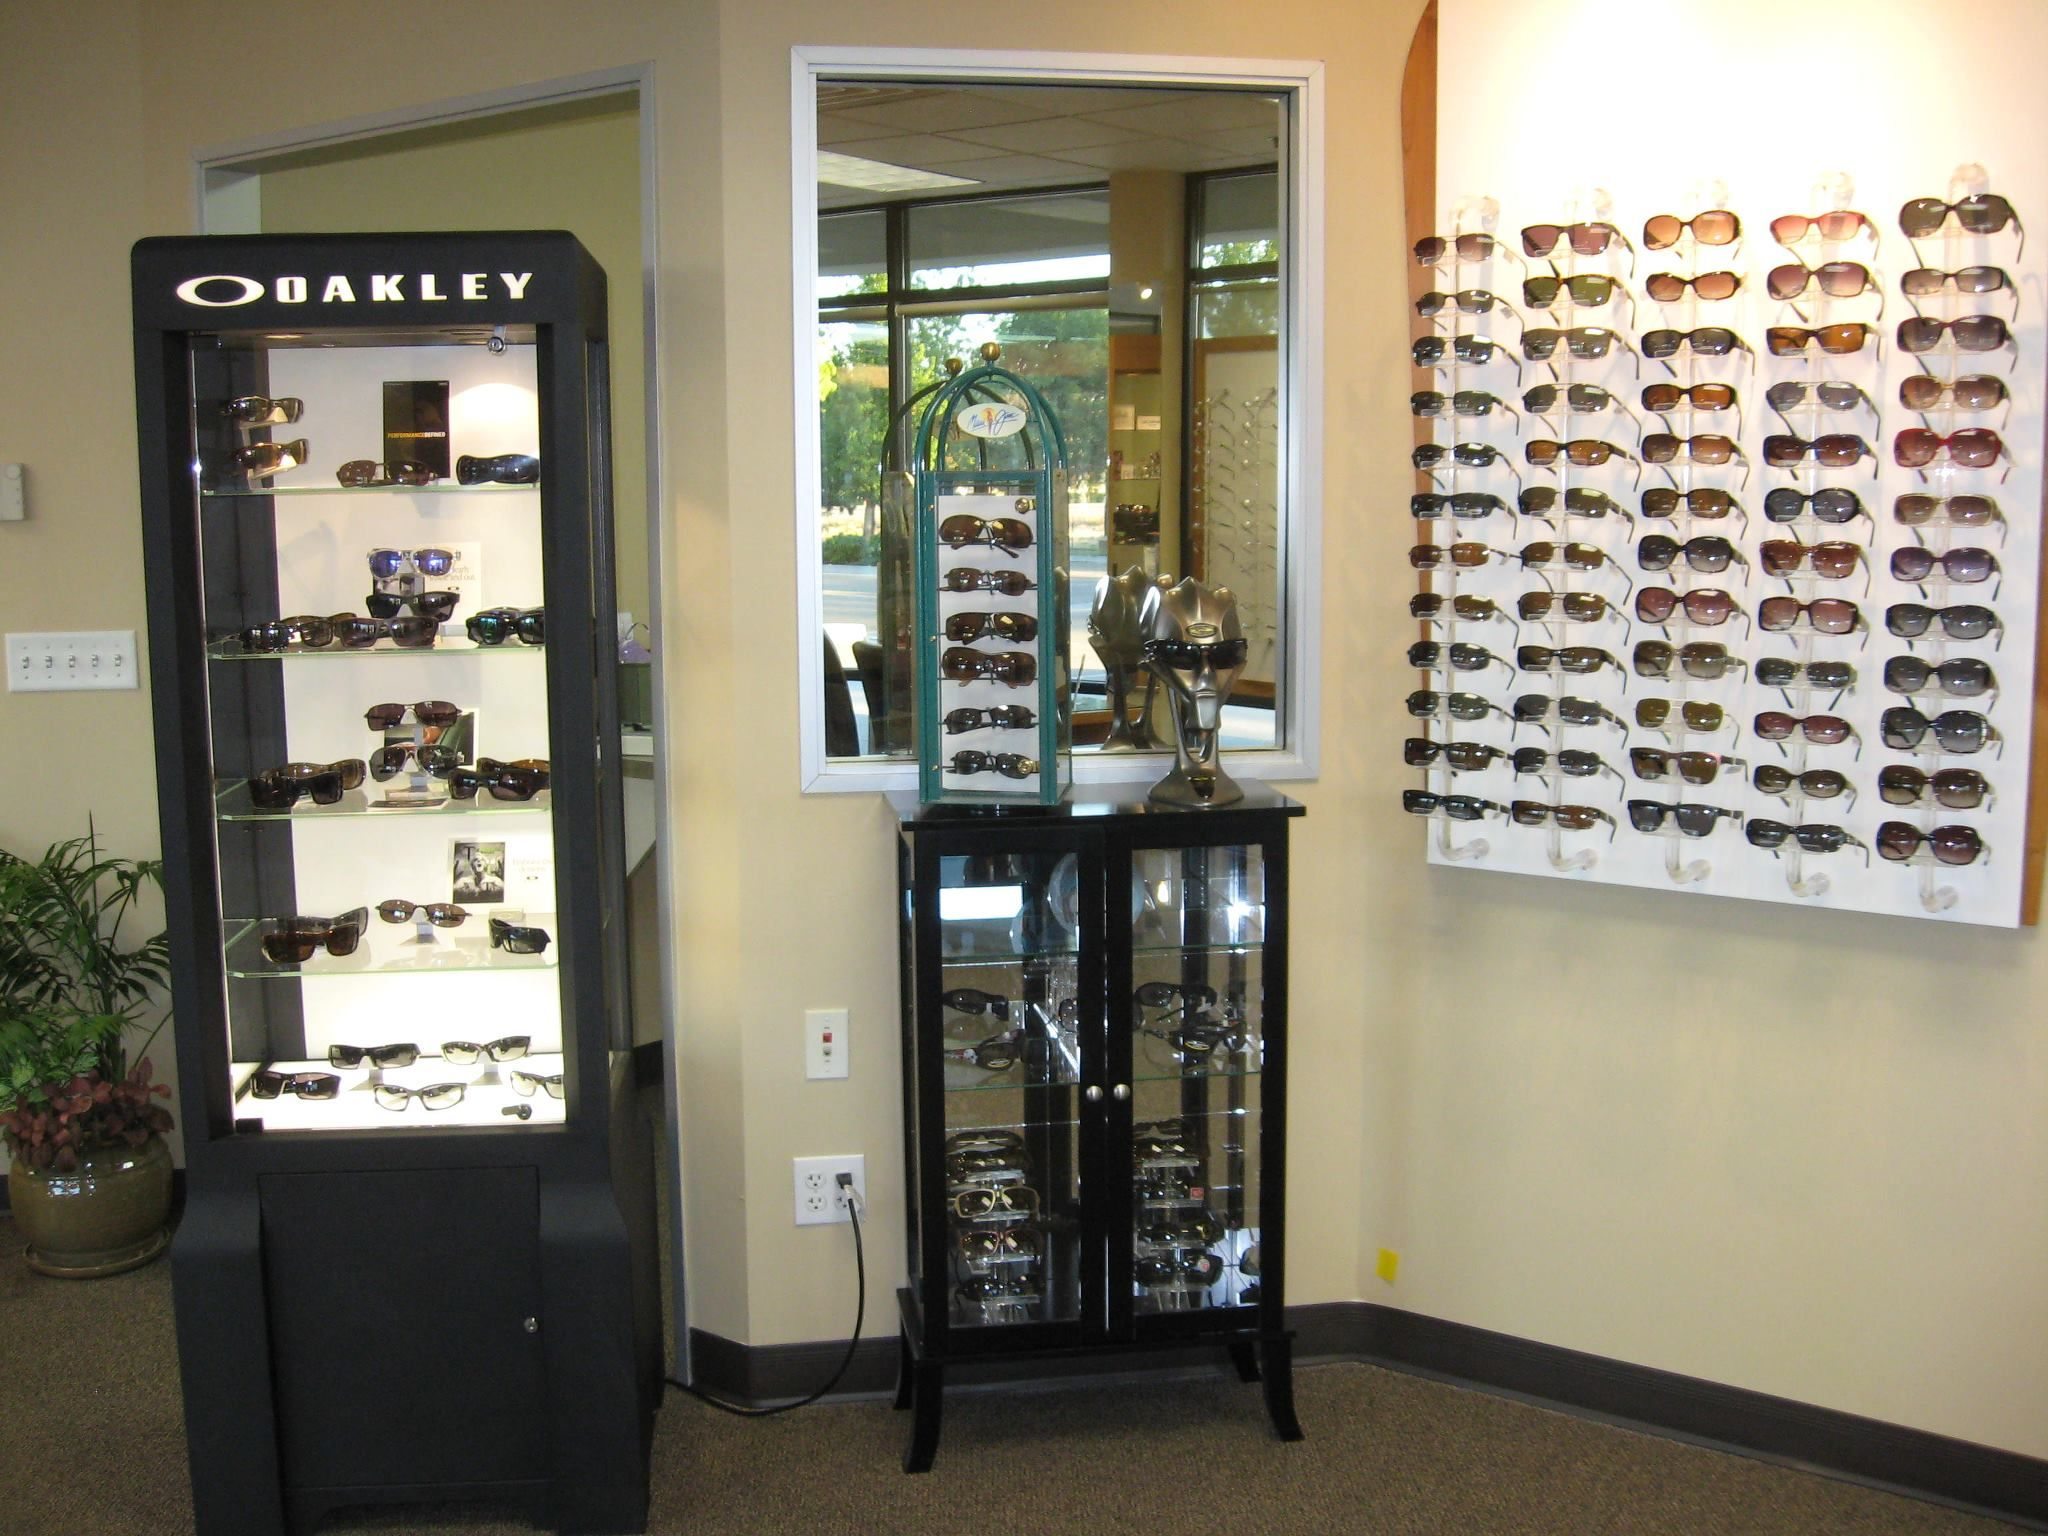 Eagle Vision One is the leading bifocal contact lenses supplier in Eagle, ID with our highly trained optometrists and state-of-the-art equipment.